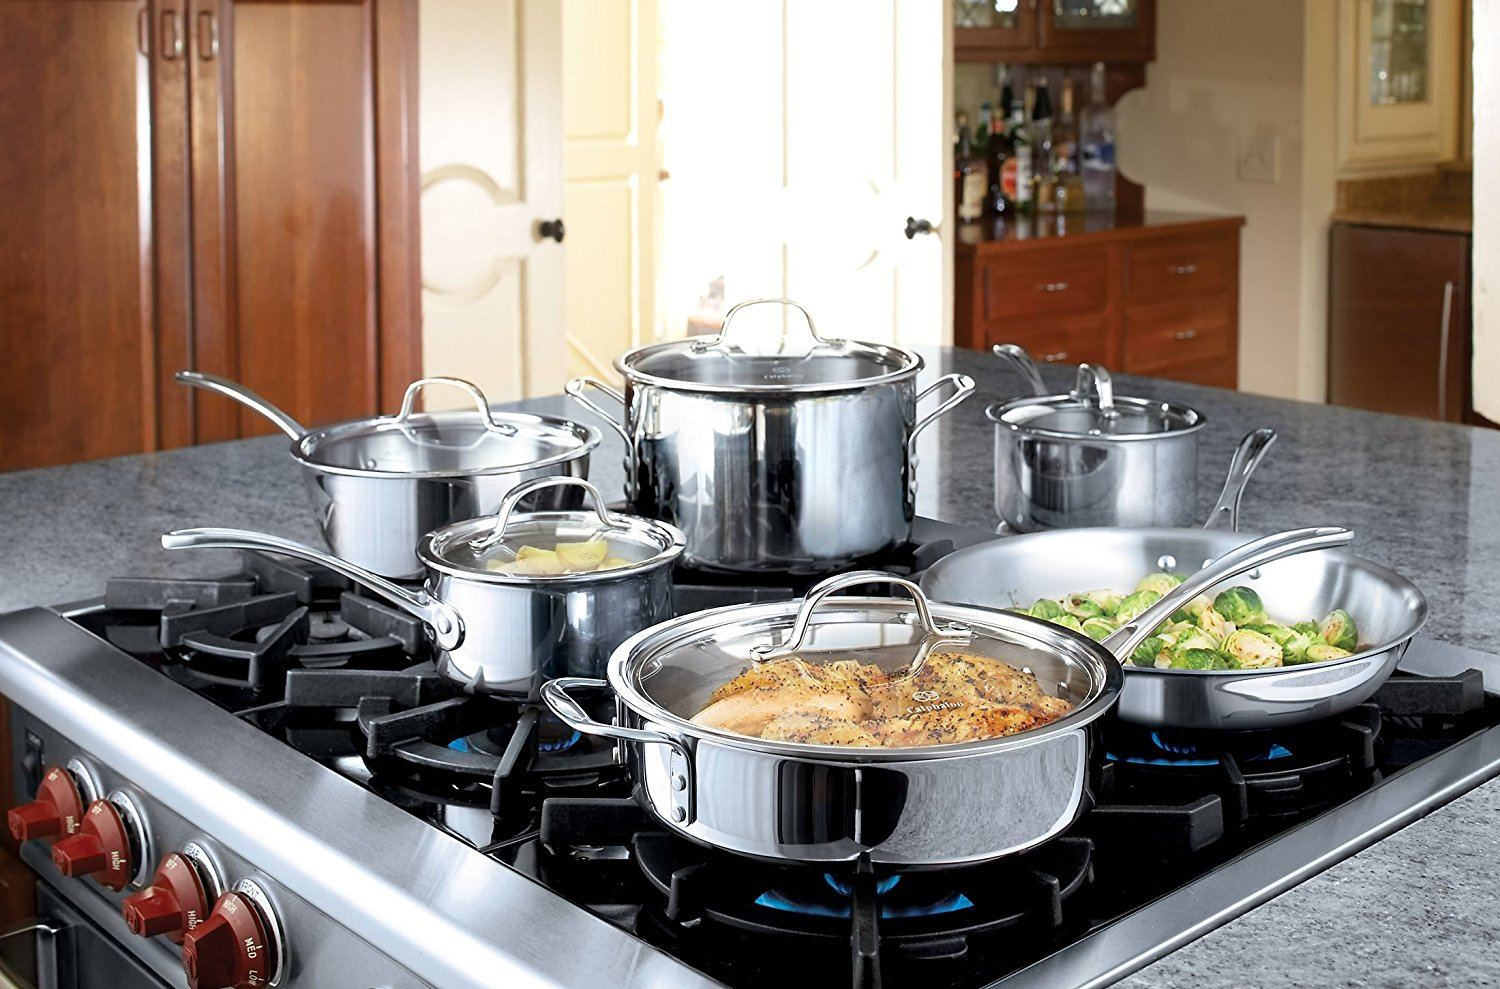 Calphalon  Stainless Steel -Cookware on the stove